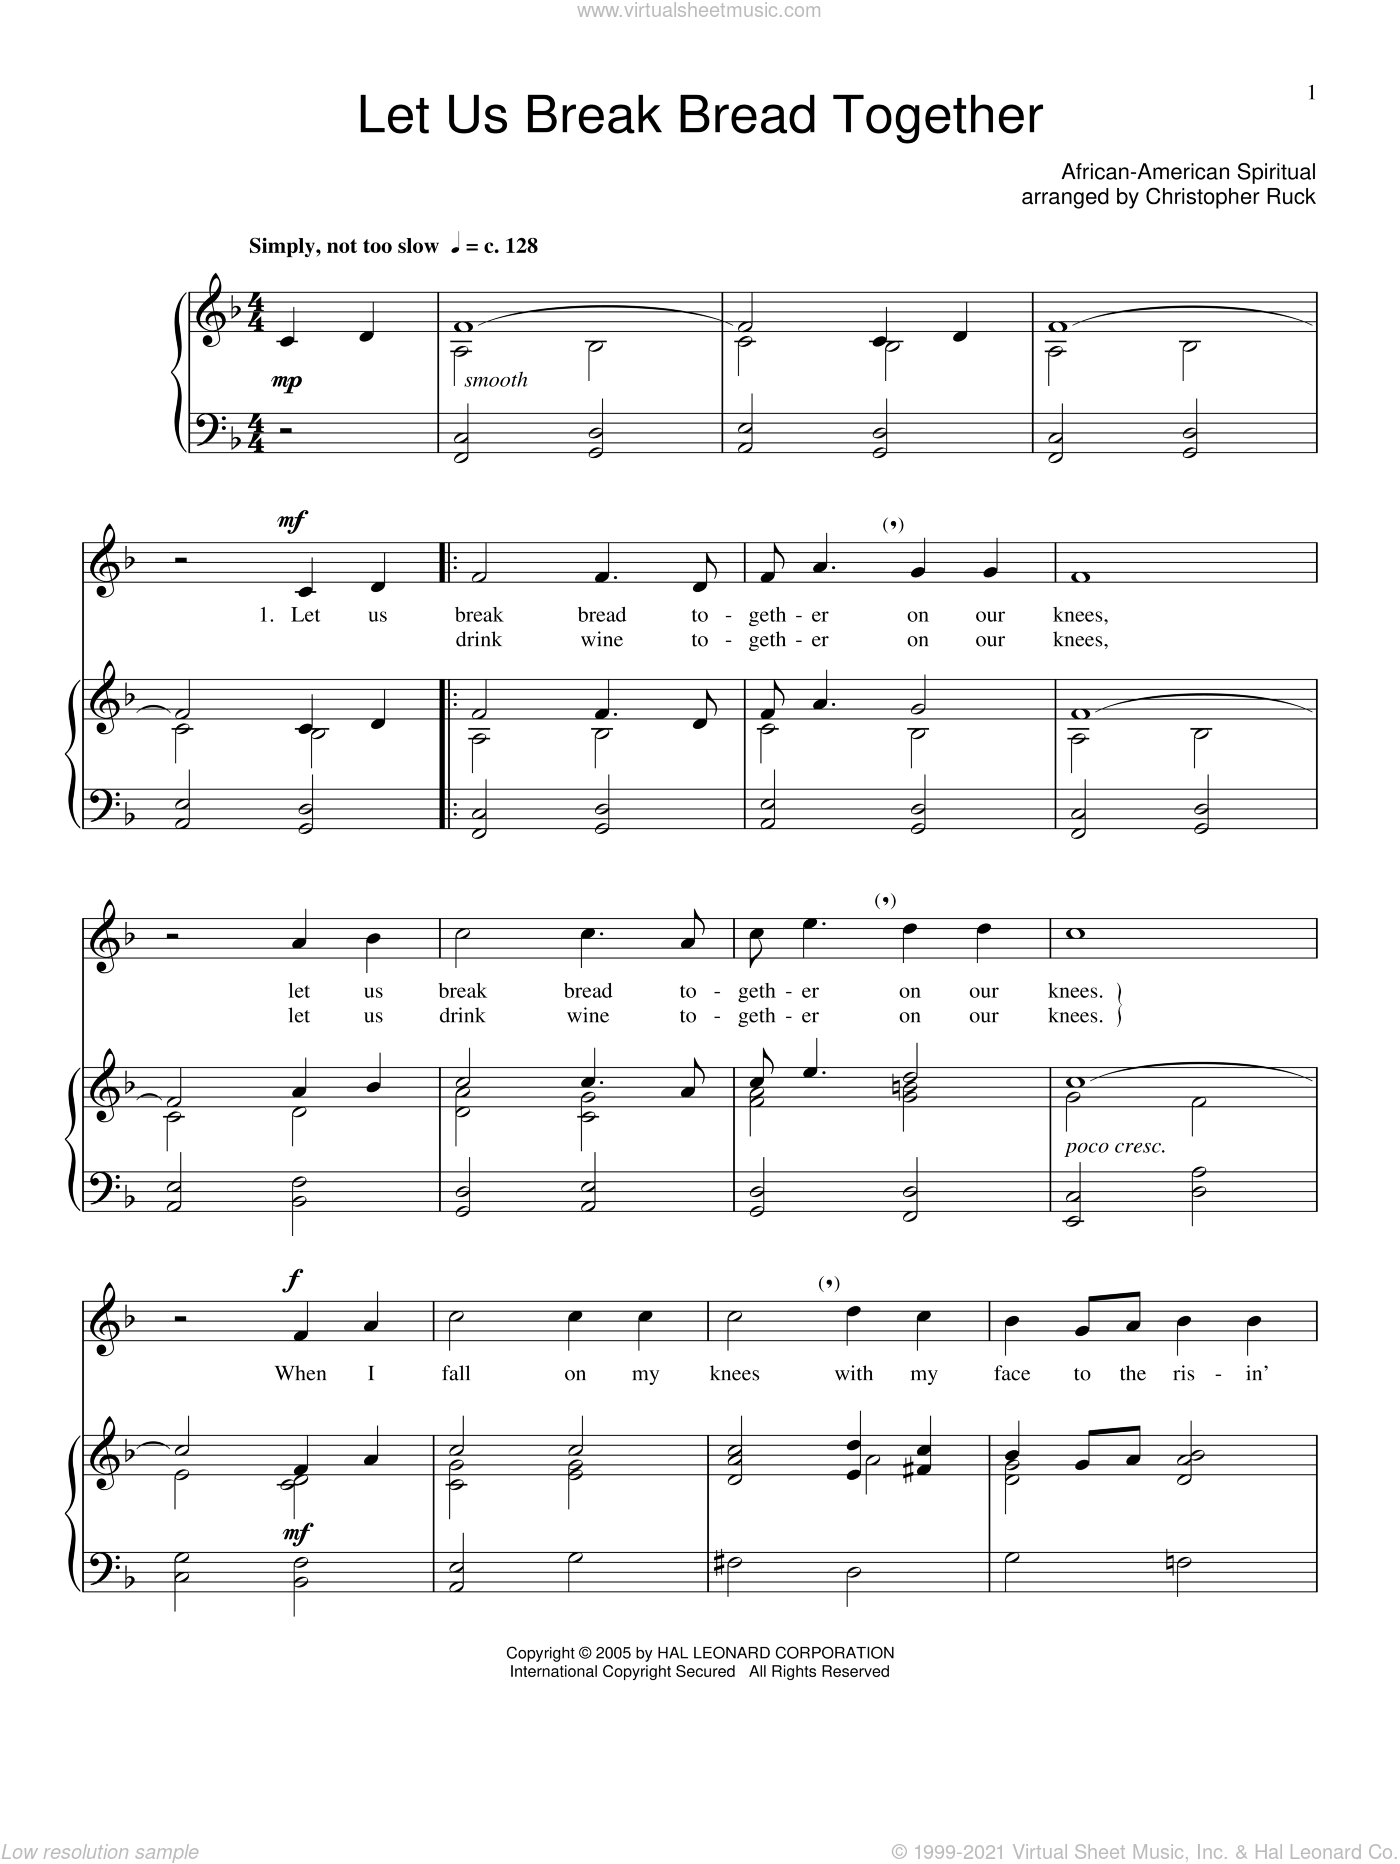 Let Us Break Bread Together sheet music for voice and piano. Score Image Preview.